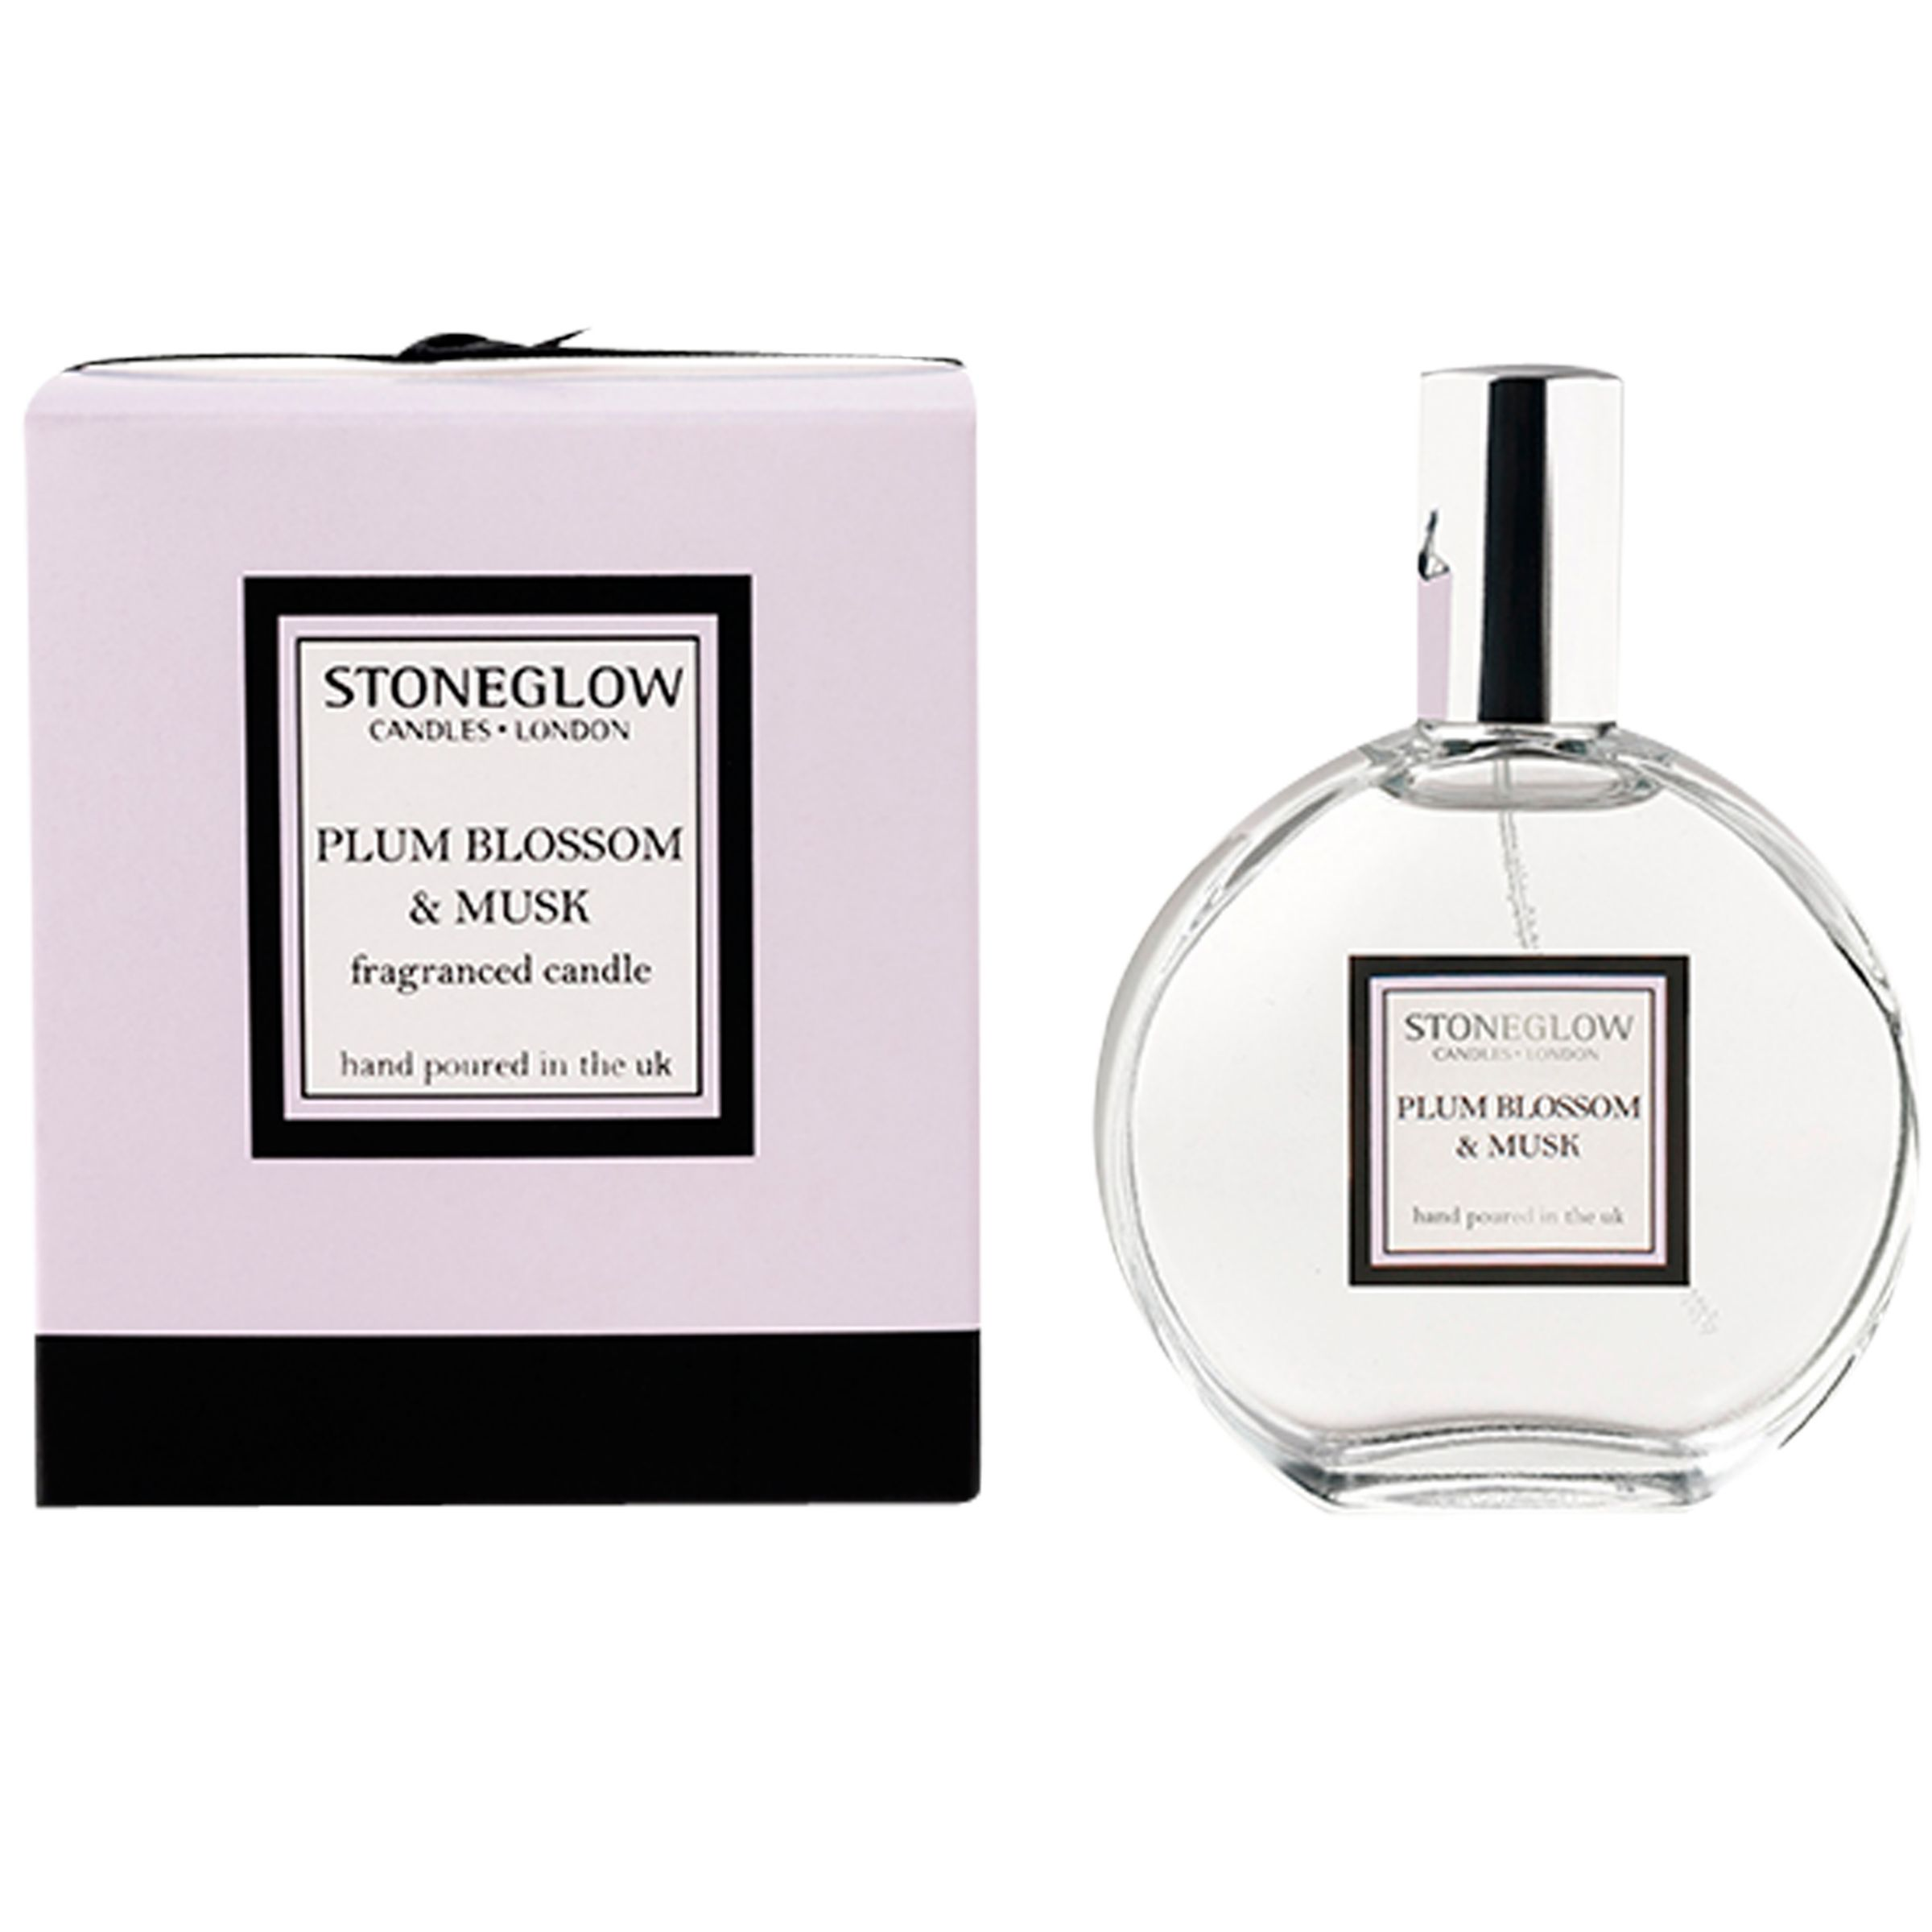 Stoneglow Stoneglow Plum Blossom and Musk Room Spray